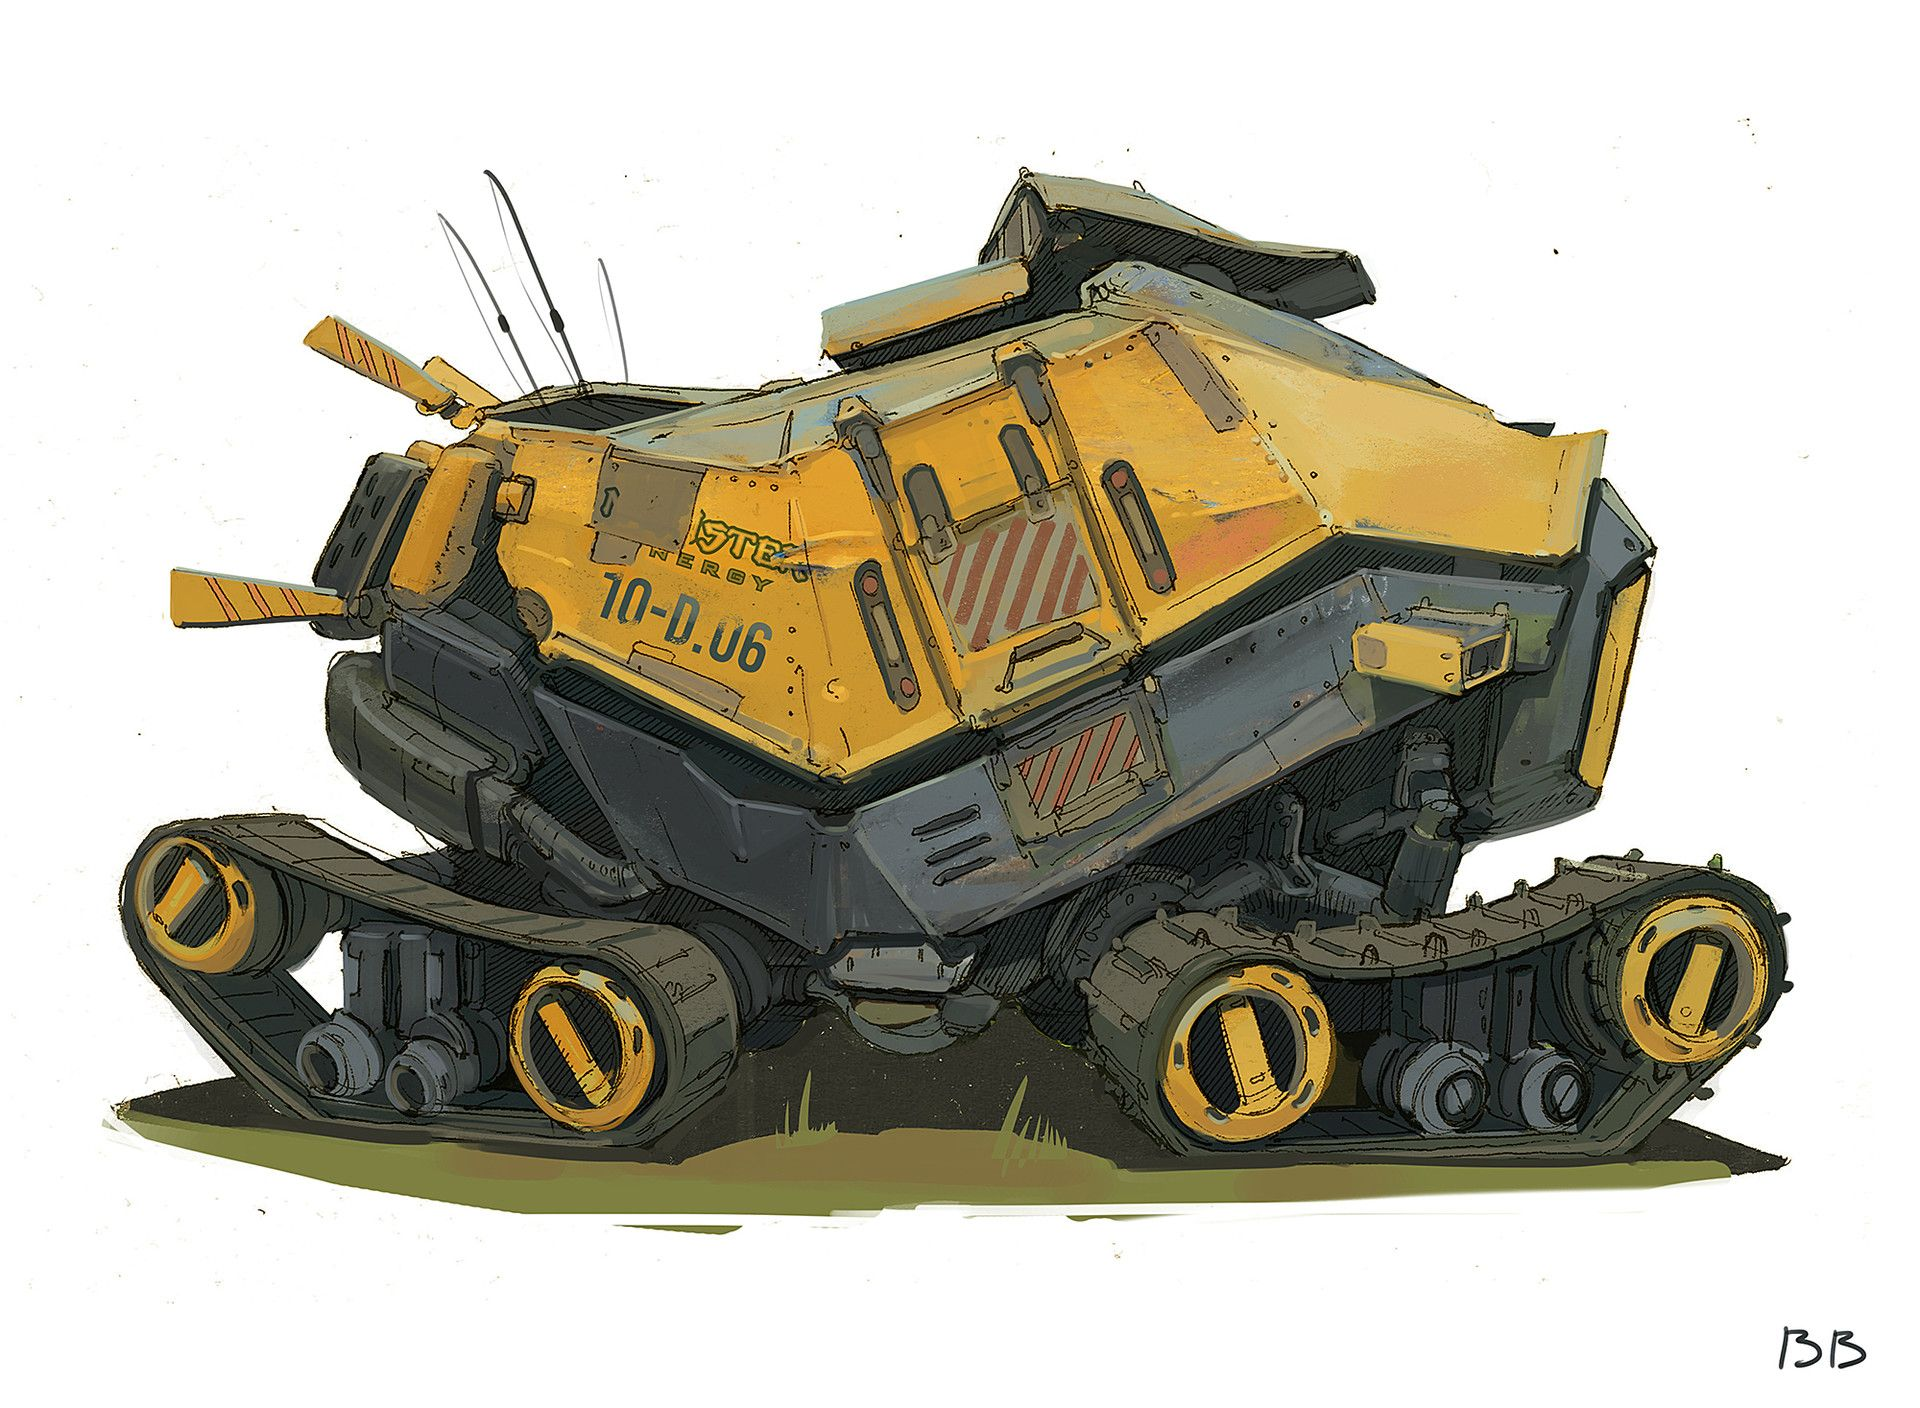 925a2856362ac0e0f2049673548d0ceb Great Description About atlas Recovery Tank with Inspiring Images Cars Review